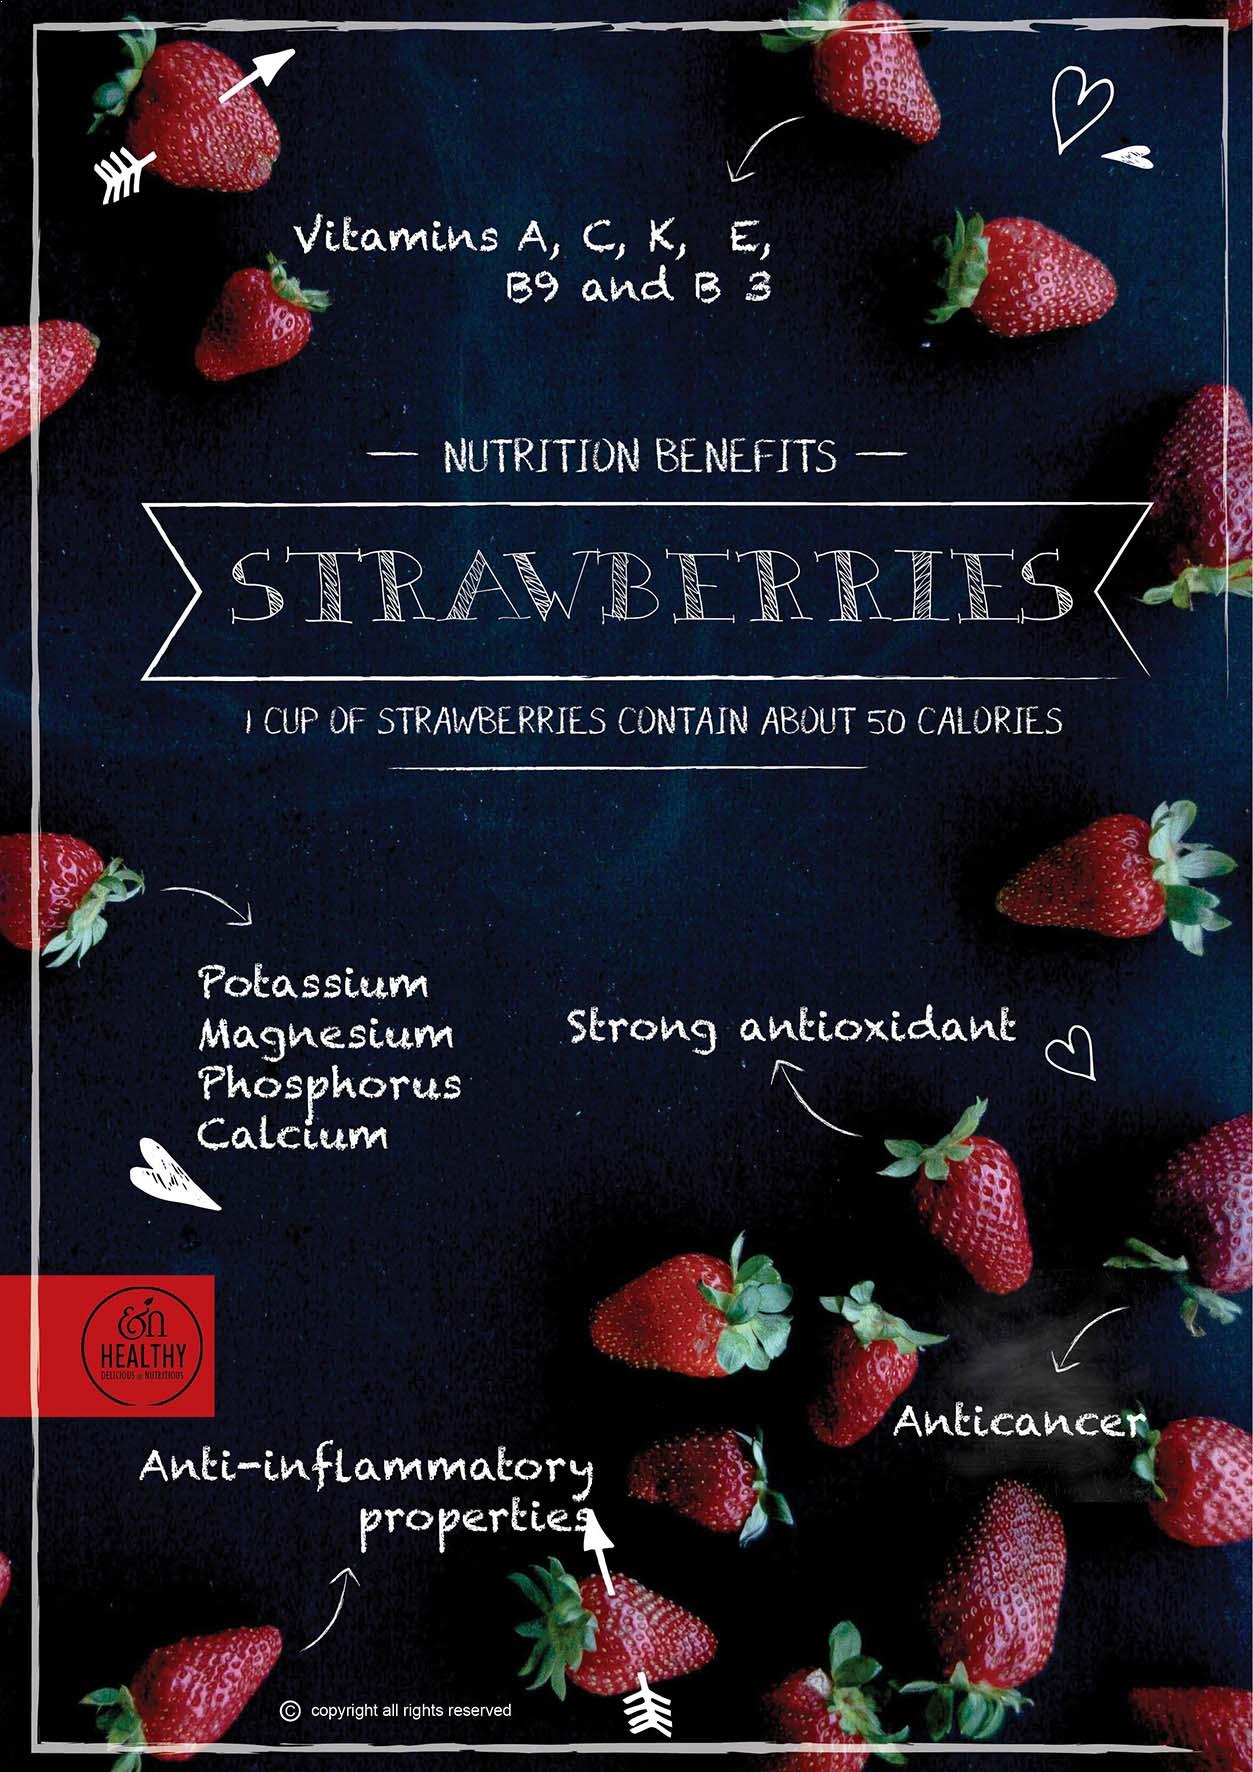 Strawberries-nutritional-benefits